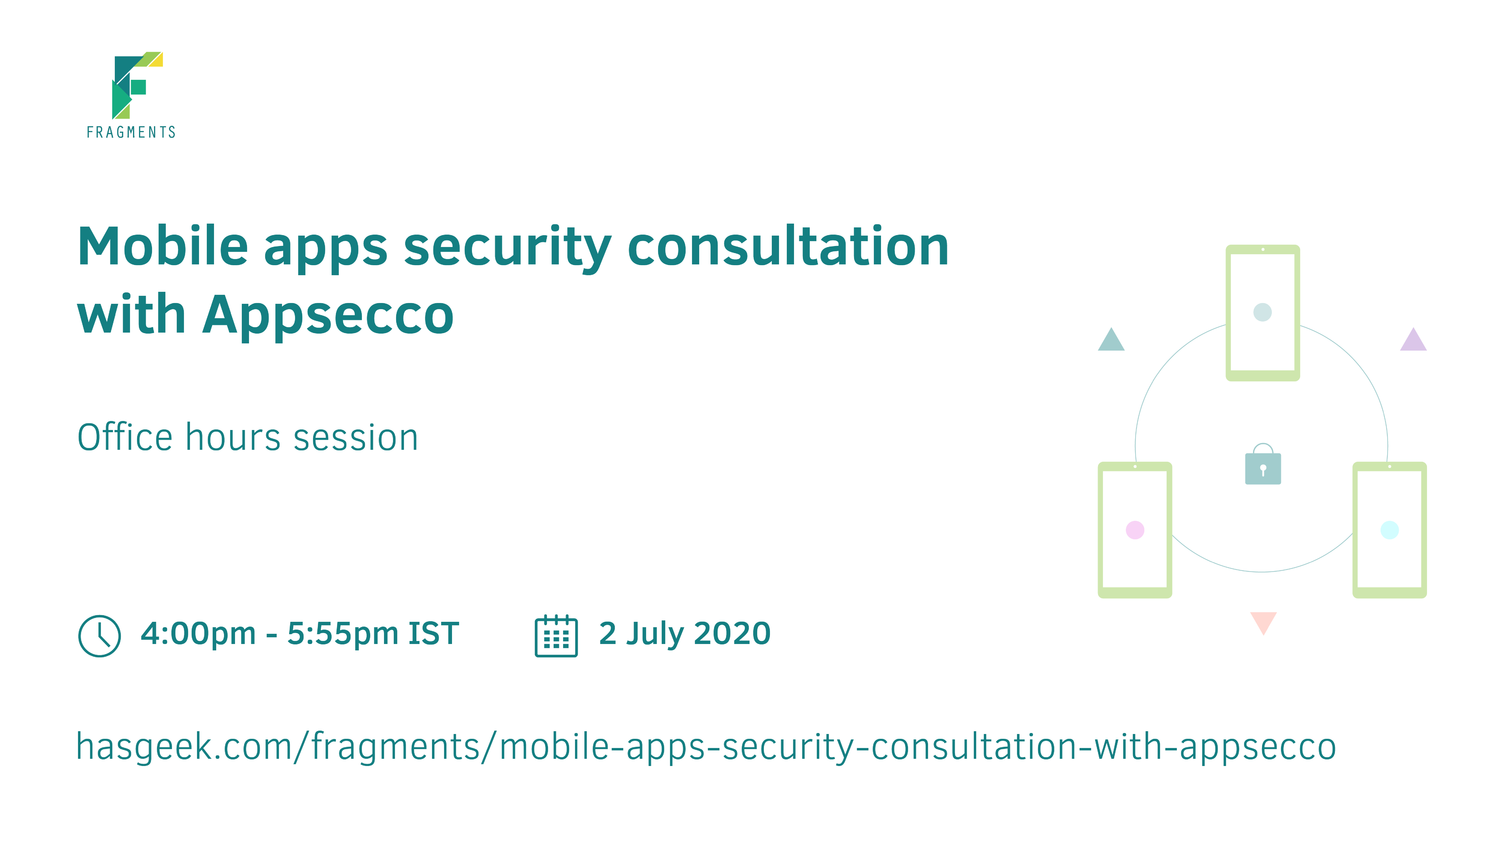 Mobile apps security consultation with Appsecco